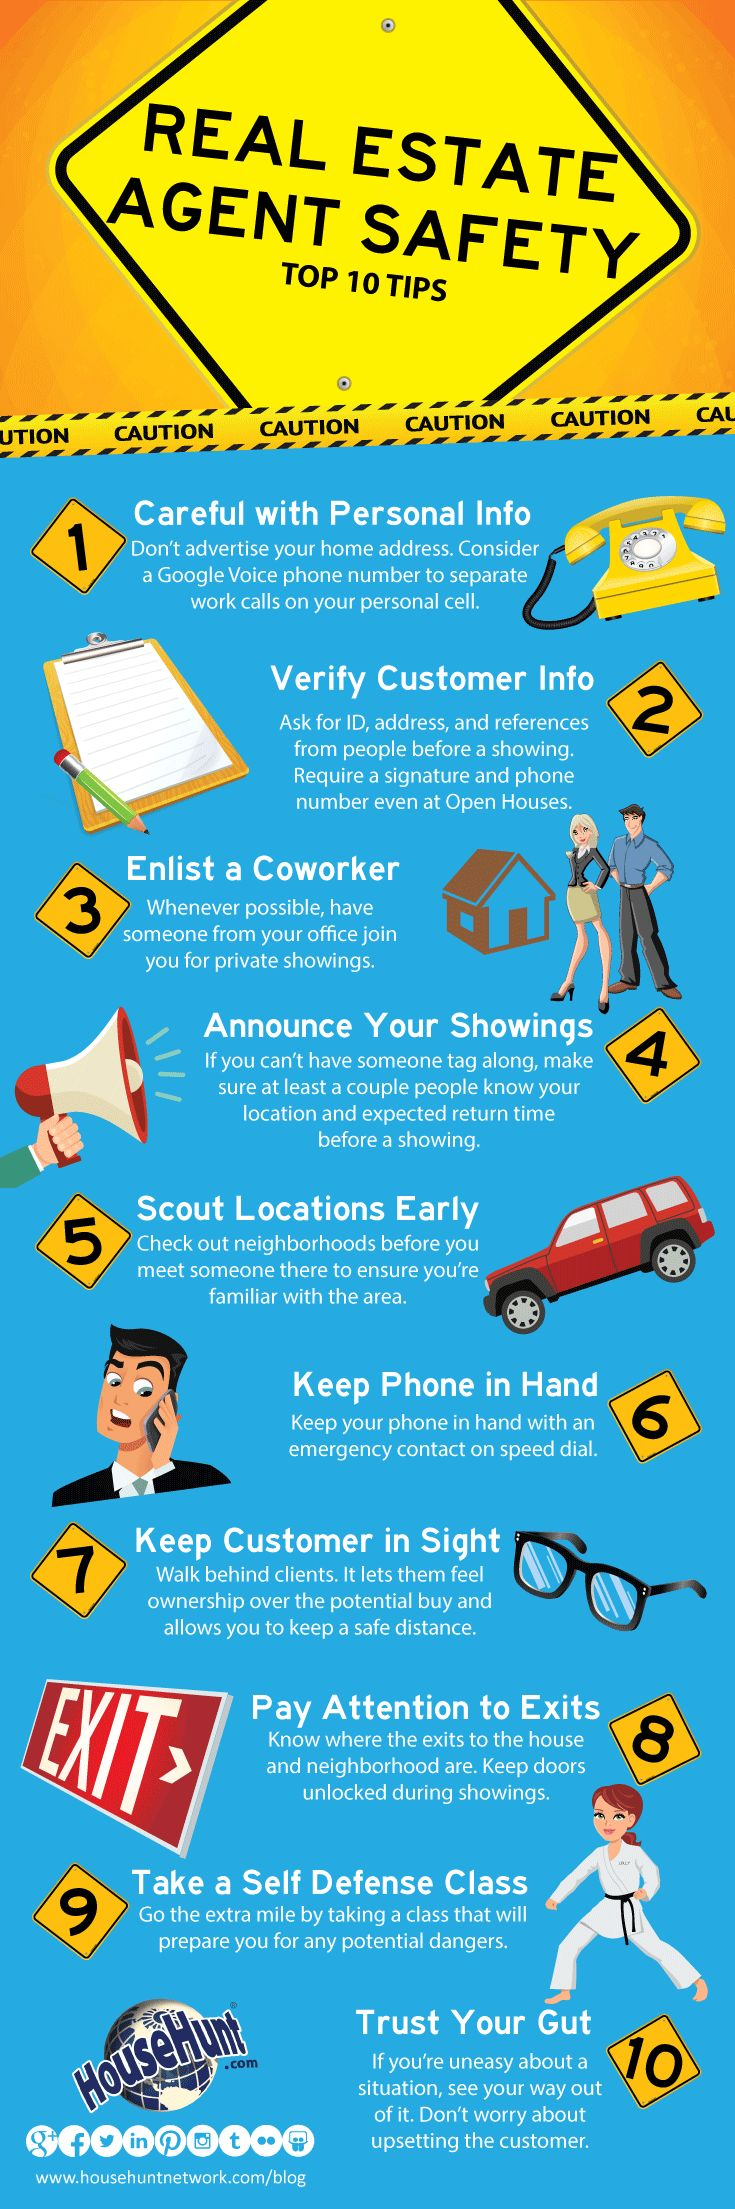 Top 10 Real Estate Agent Safety Tips [Infographic]